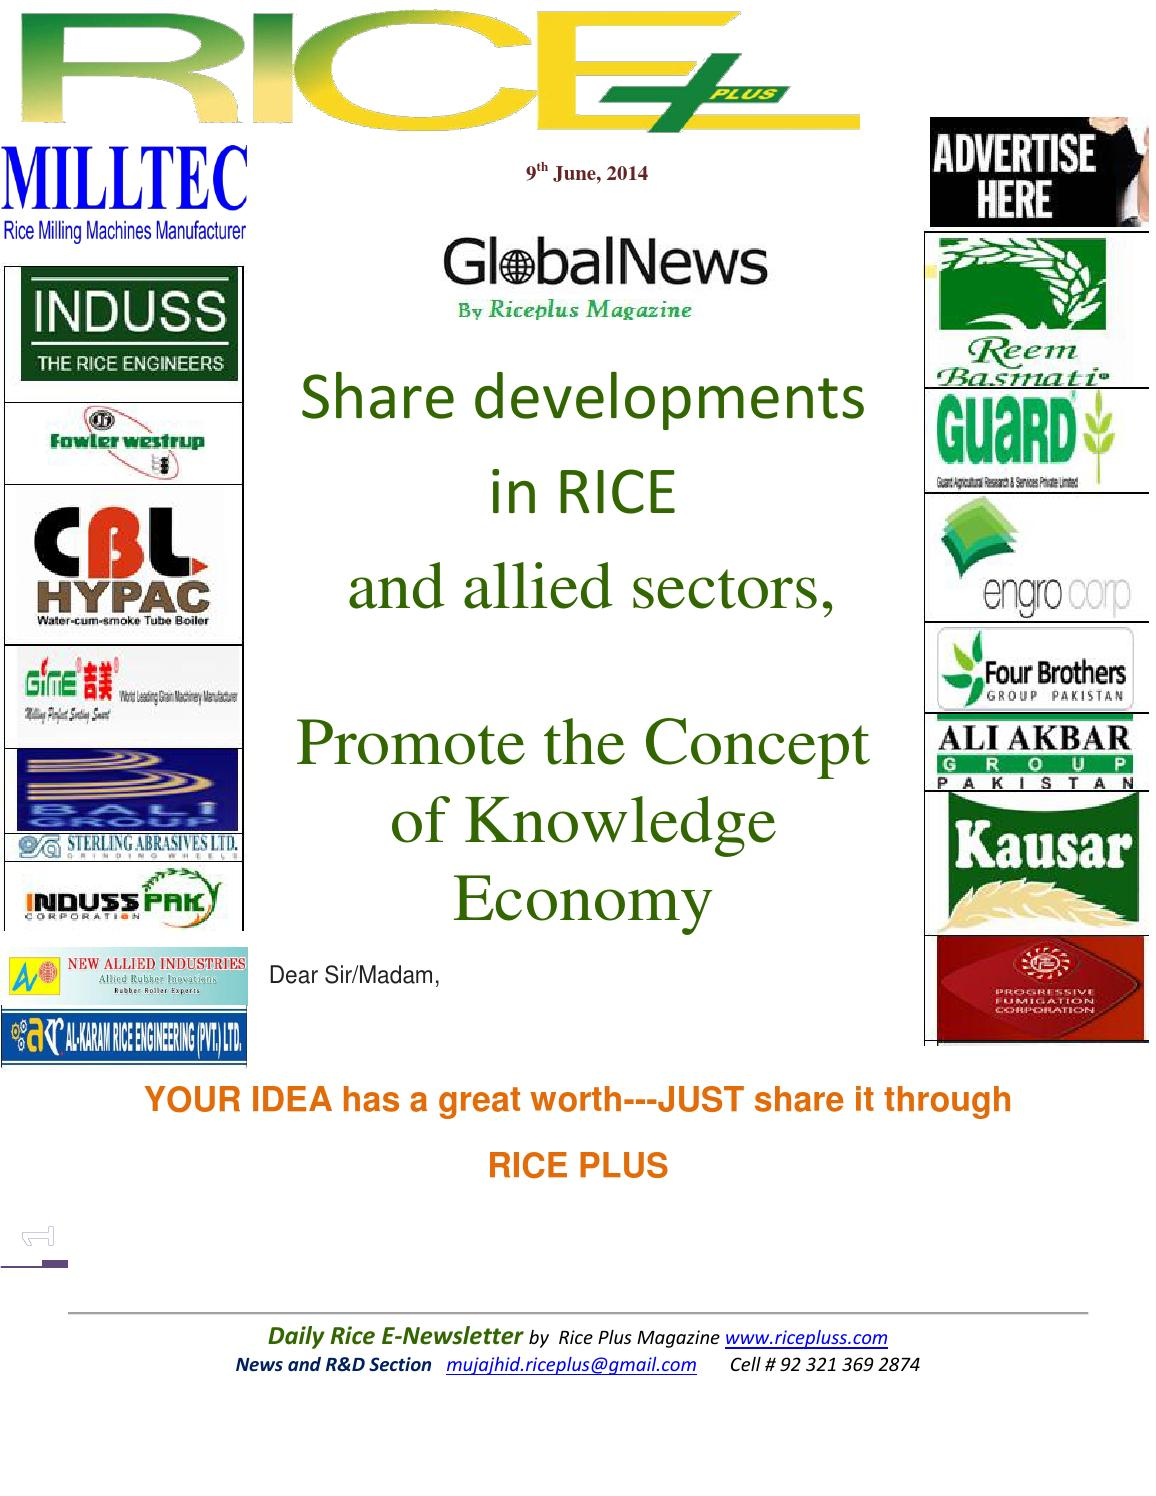 9th june,2014 daily global rice e newsletter by riceplus